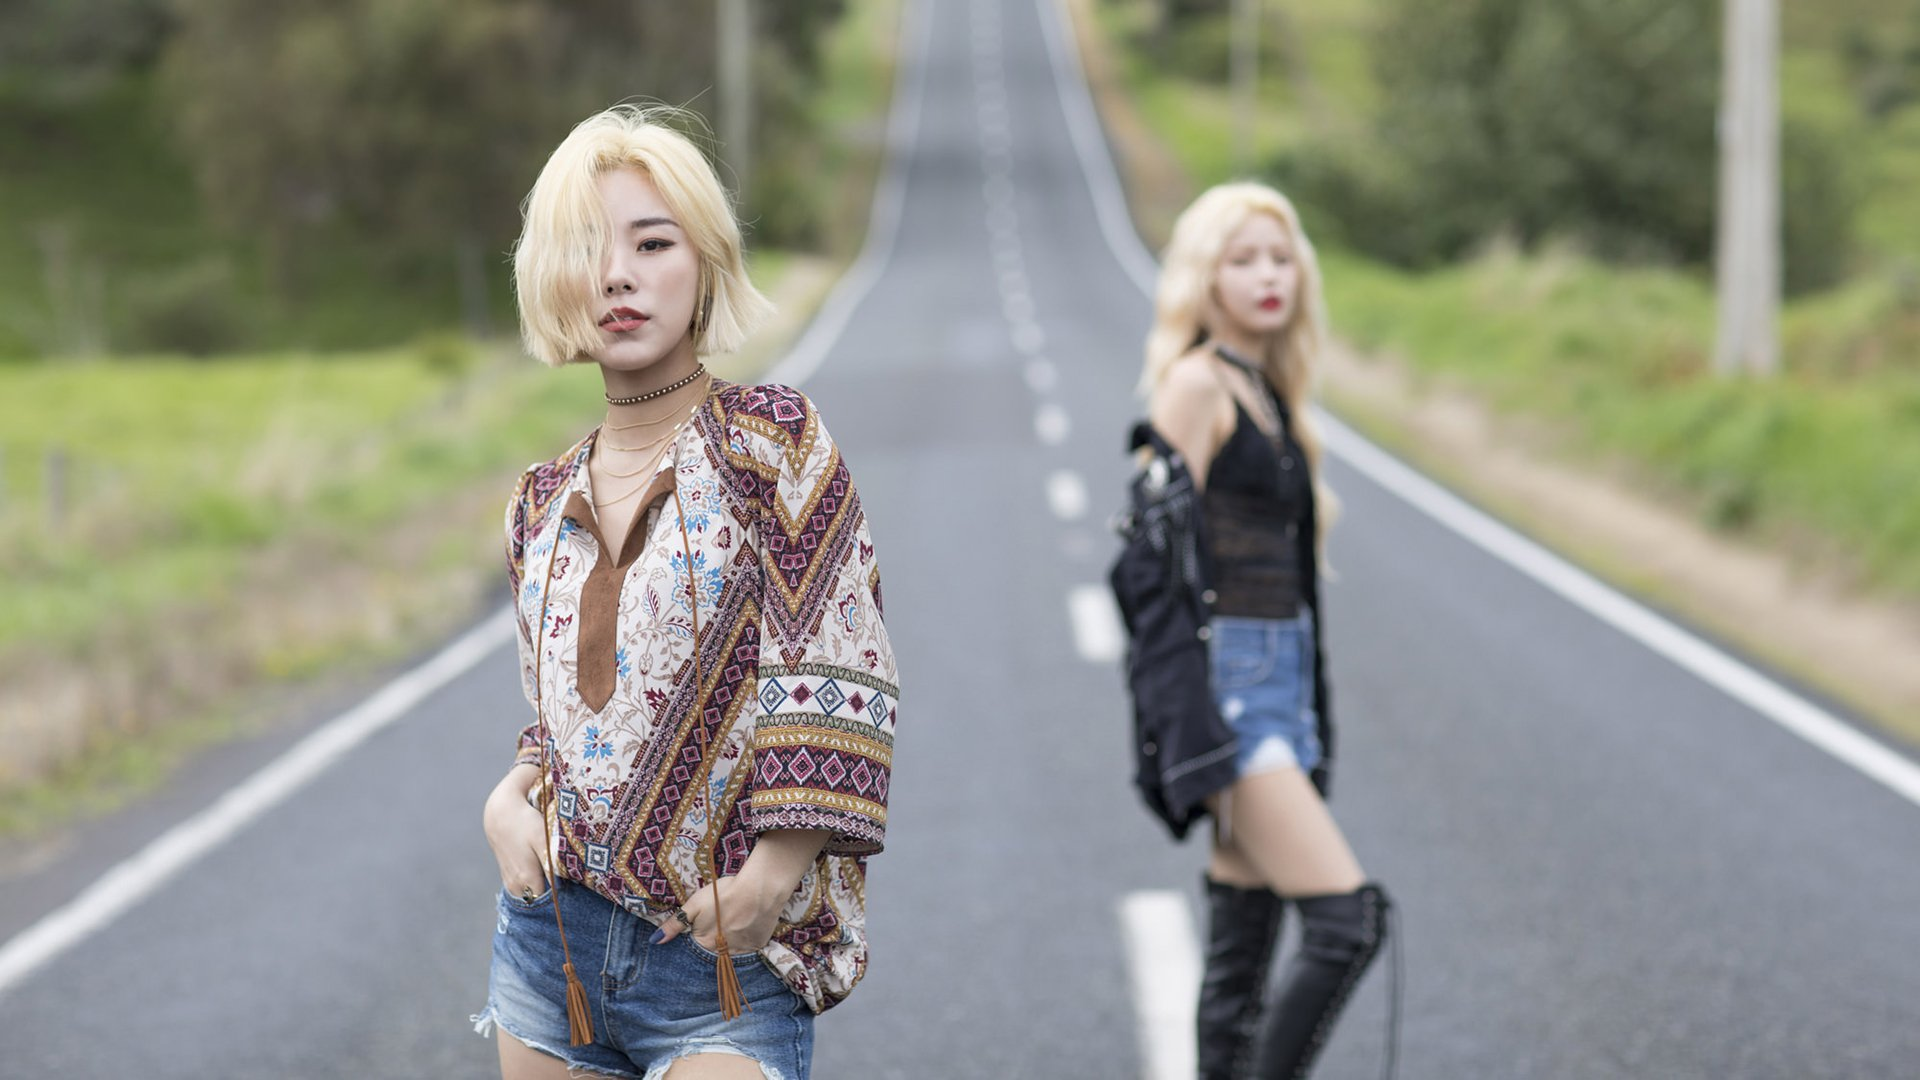 Music - Mamamoo  Depth Of Field Asian Singer K-Pop Mamamoo (Band) Korean Blonde Long Hair Brown Eyes Shorts Road Wallpaper